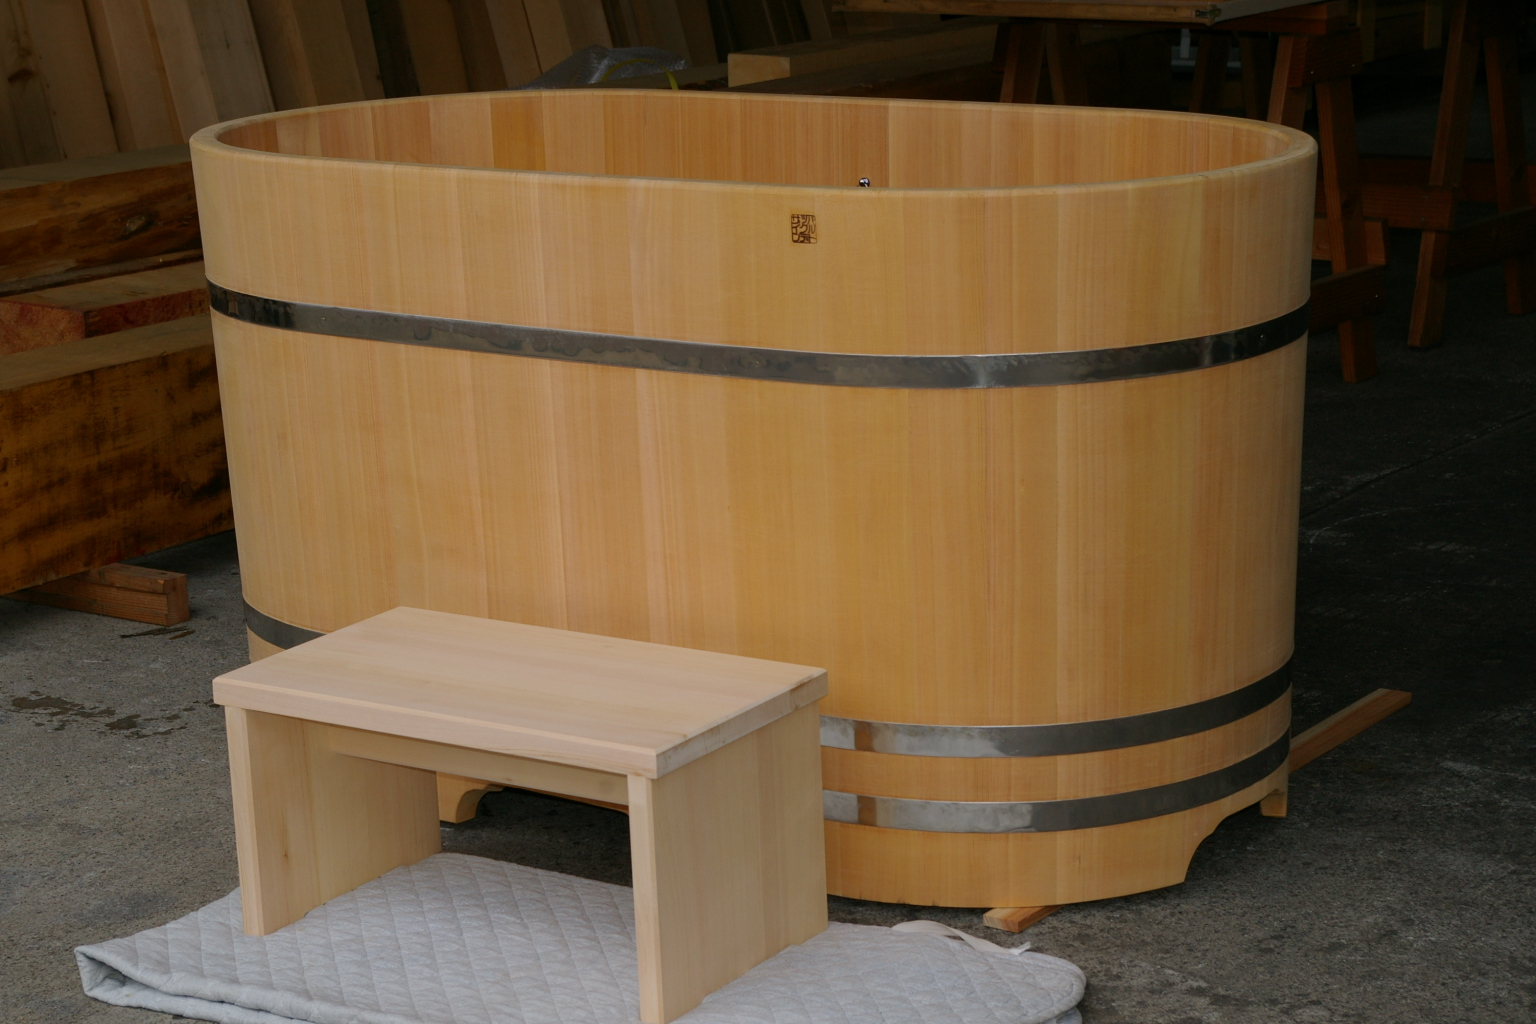 ofuro soaking hot tubs: ofuro for a long chat